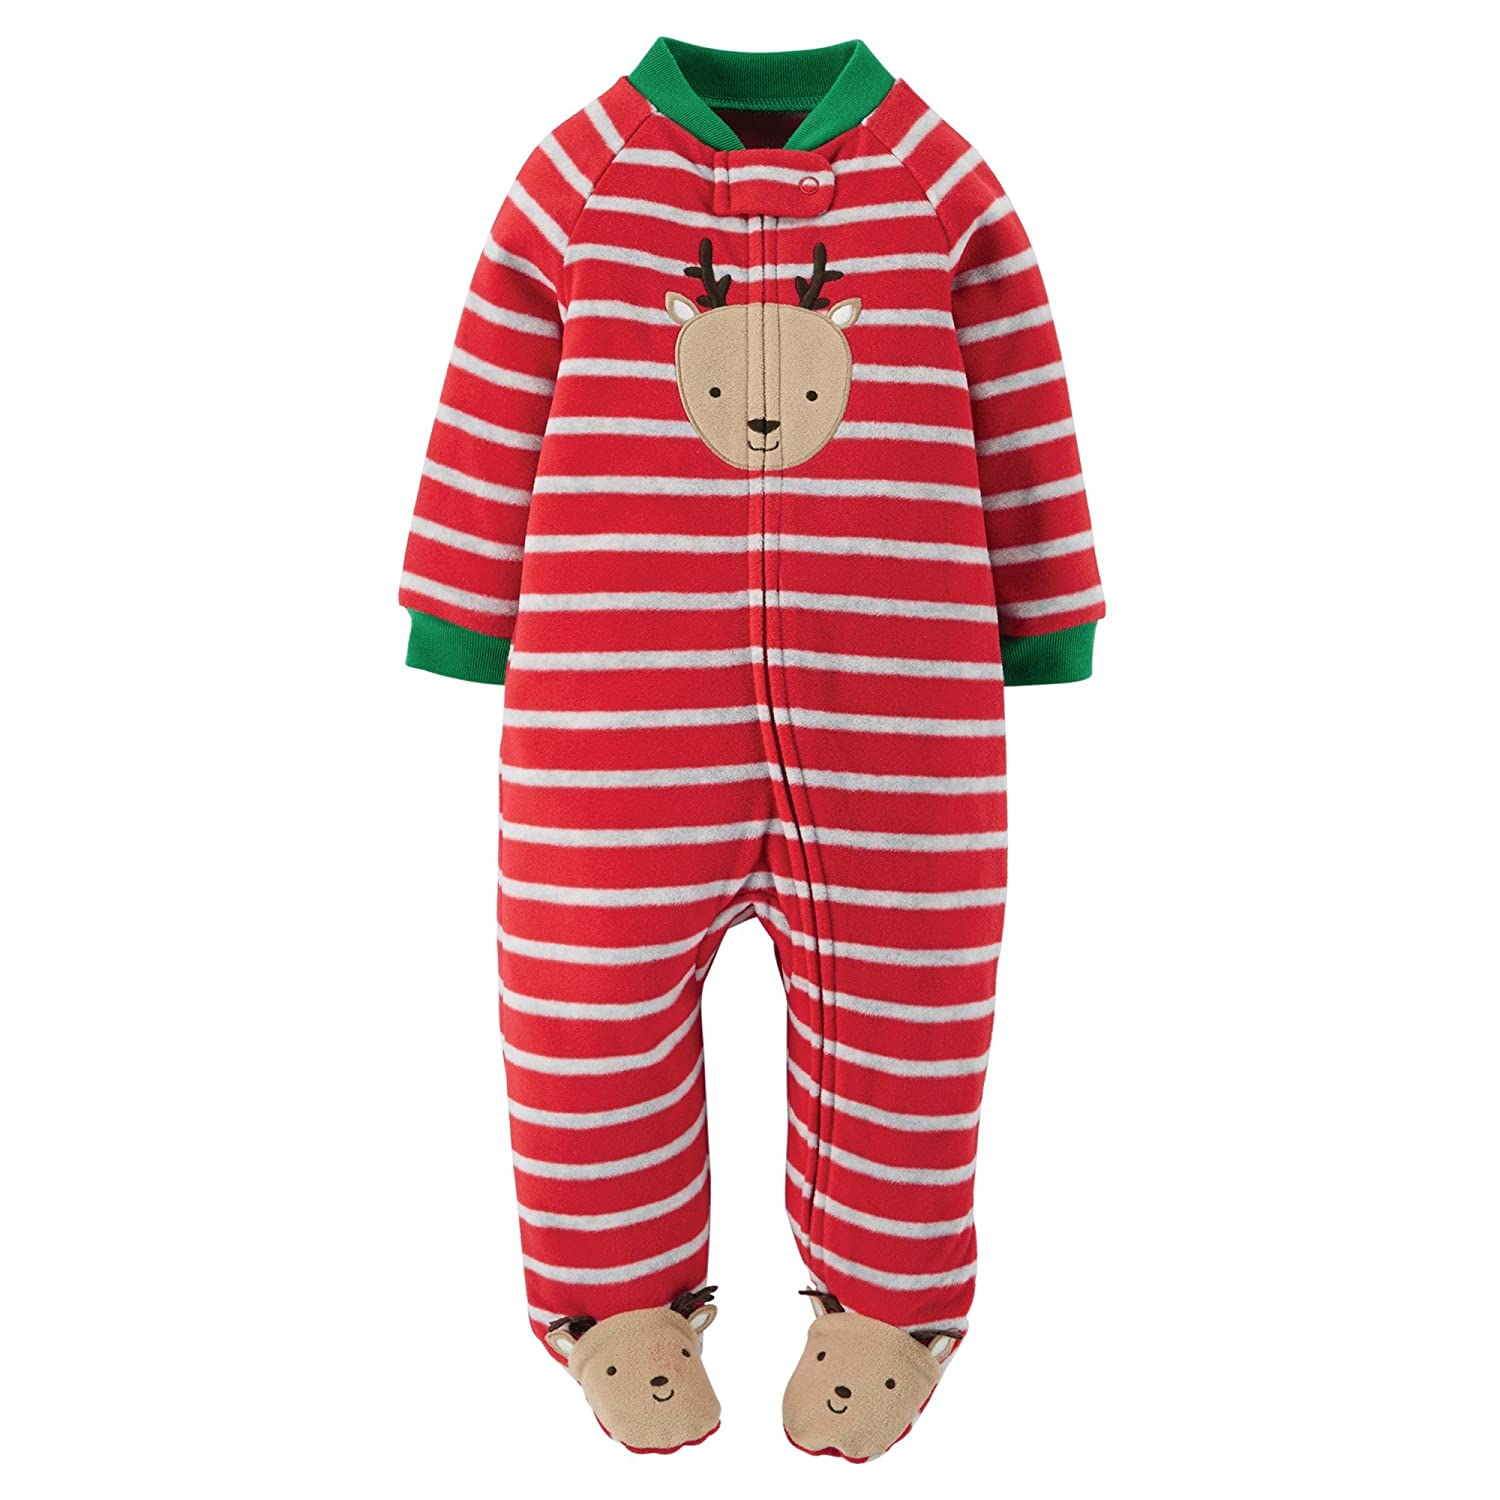 1e0ee63bc Amazon.com  Carter s Infant Boys Red Stripe Fleece Christmas ...